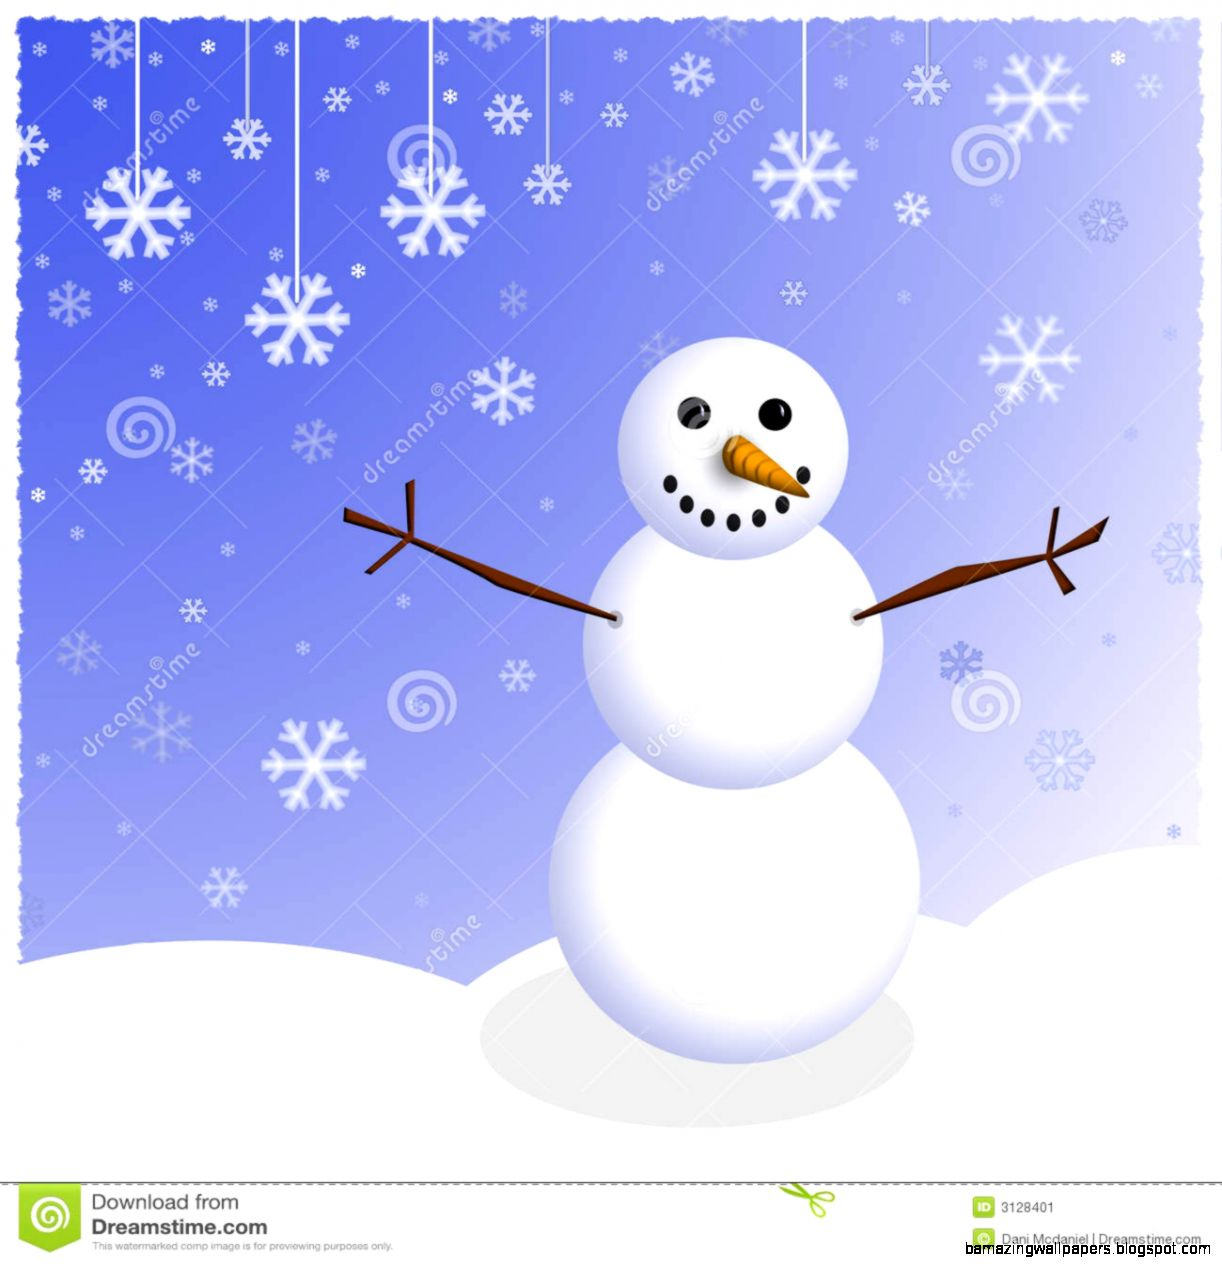 Winter Snowman Scene Stock Image   Image 3128401